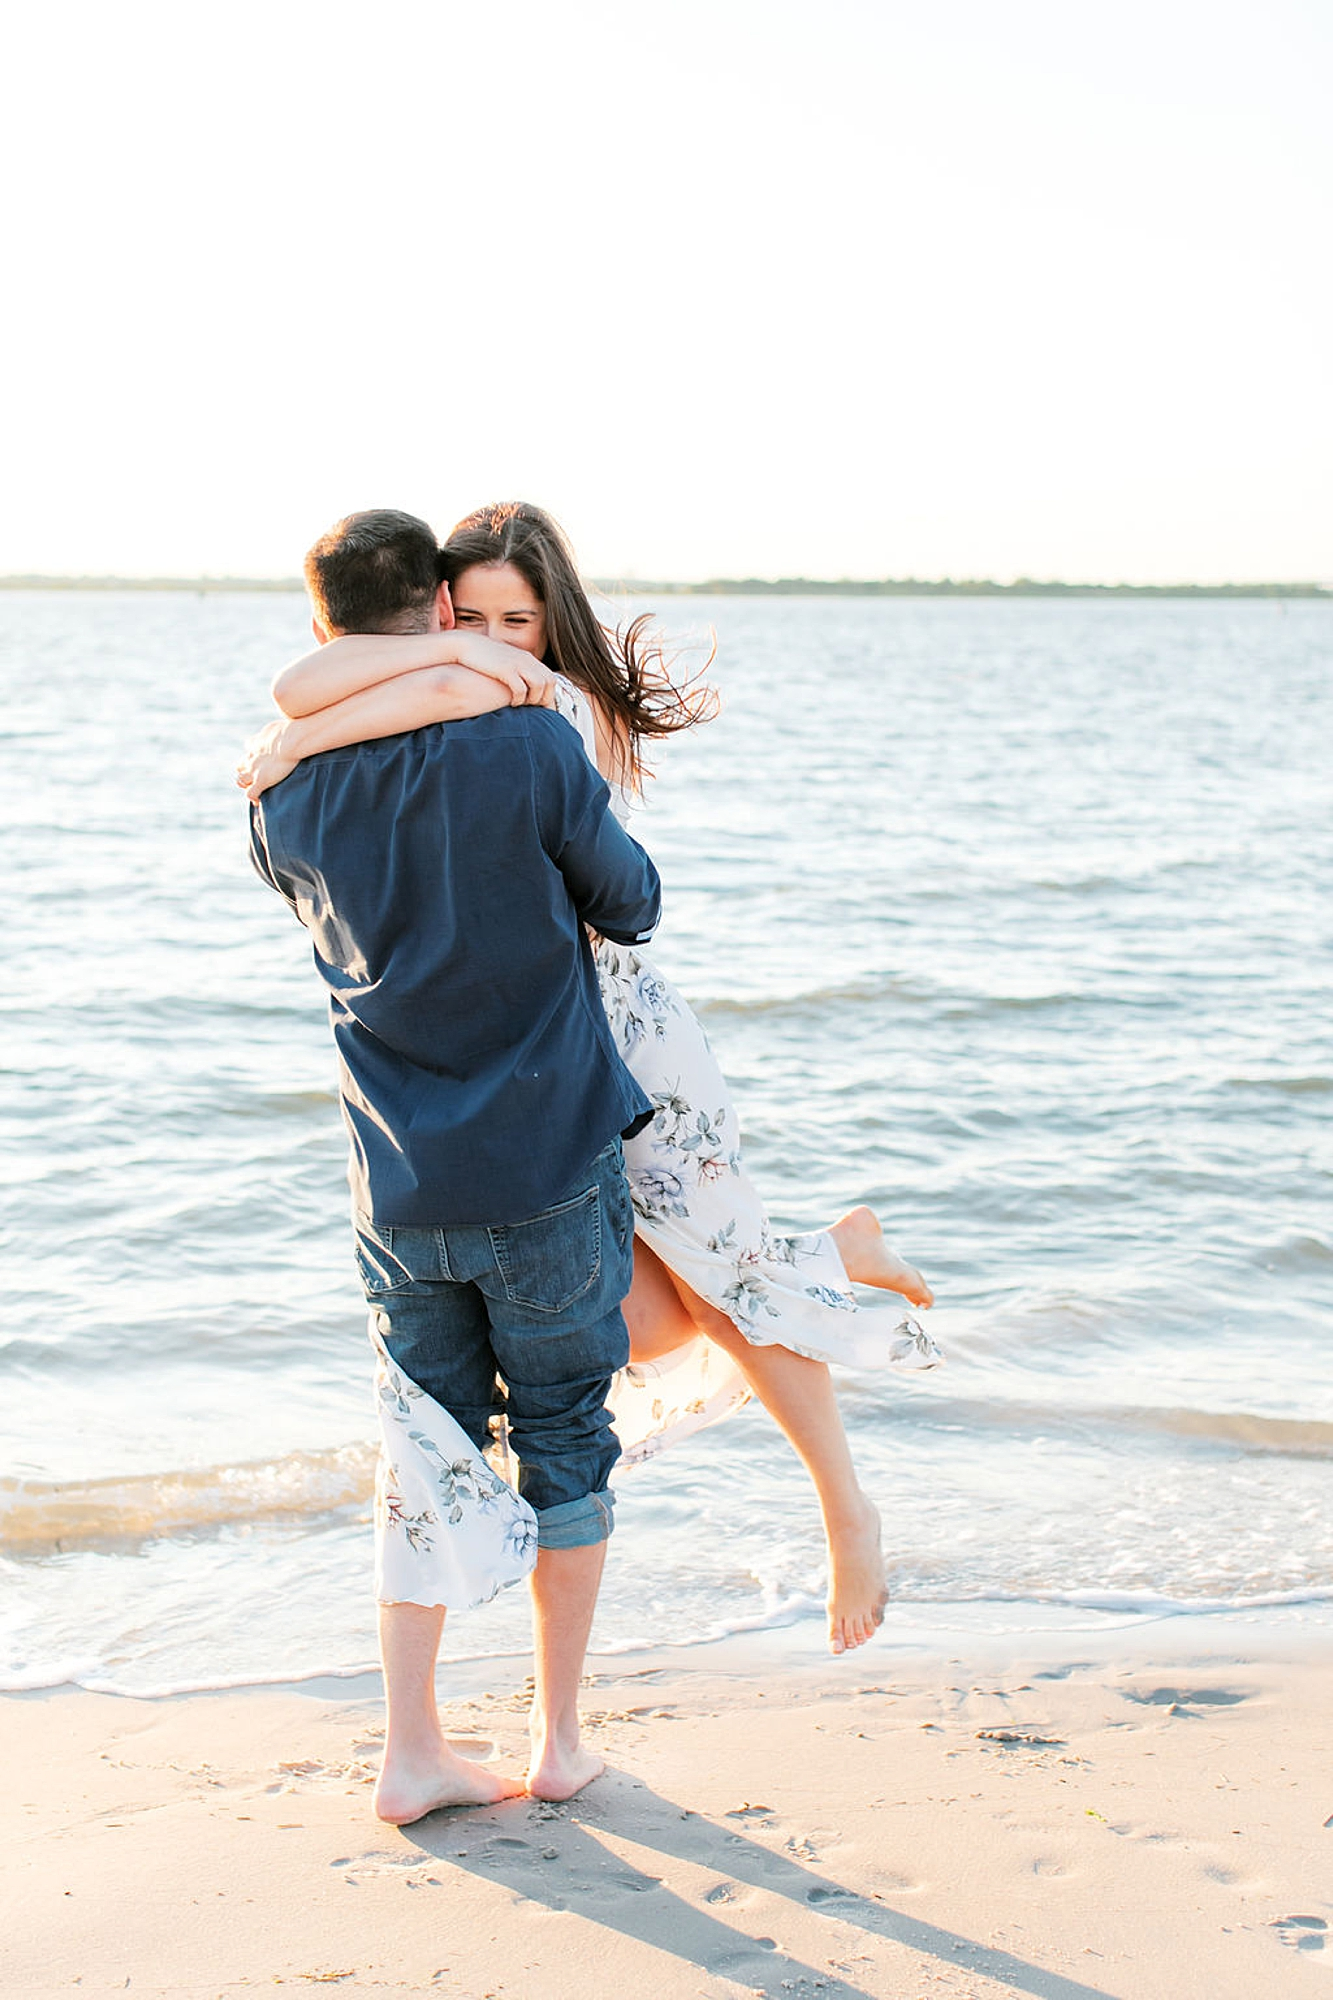 Film Engagement Session Photography in Ocean City NJ by Magdalena Studios 0044